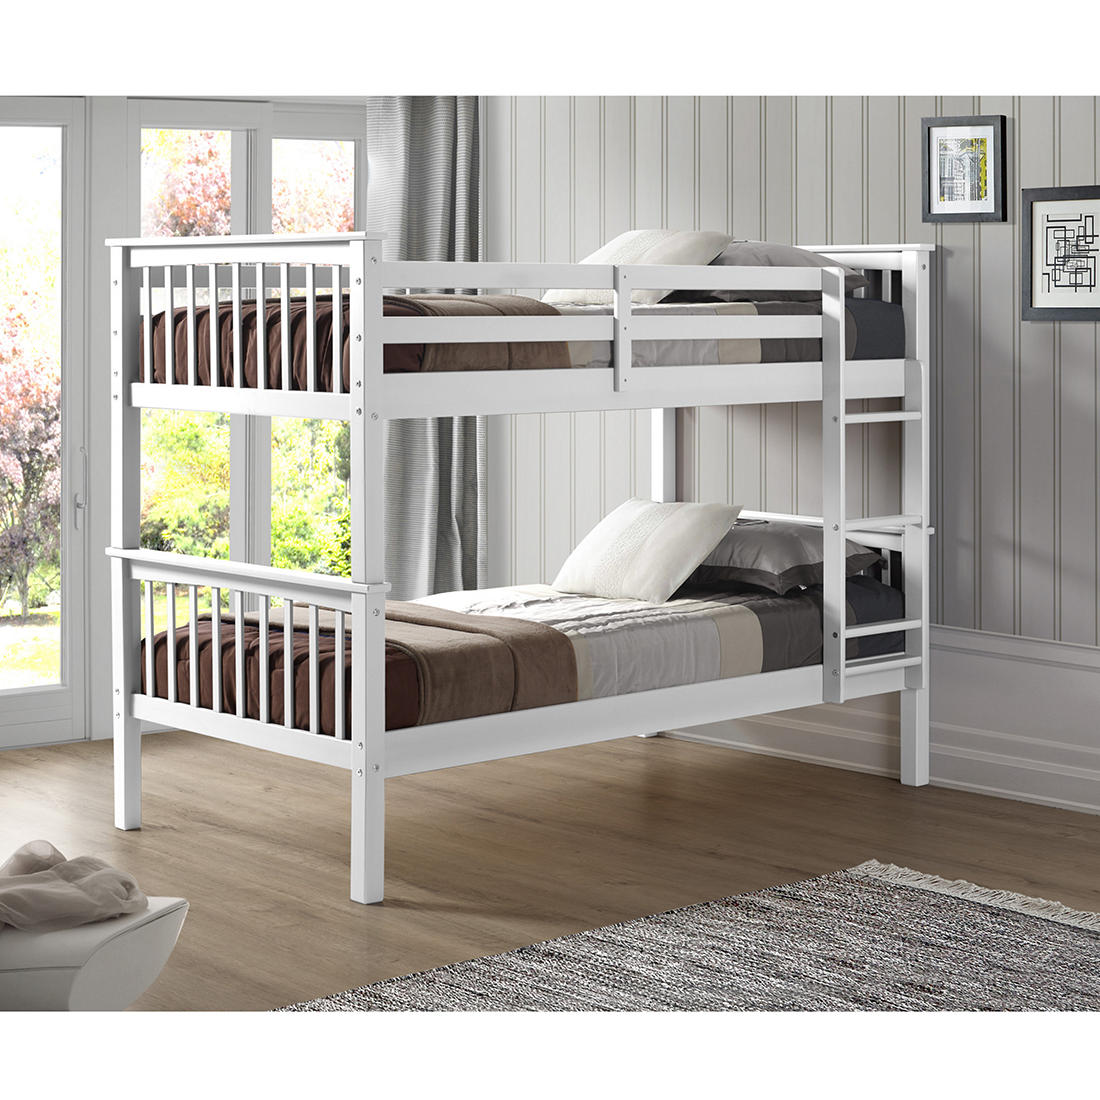 W Trends Twin Size Solid Wood Mission Bunk Bed White